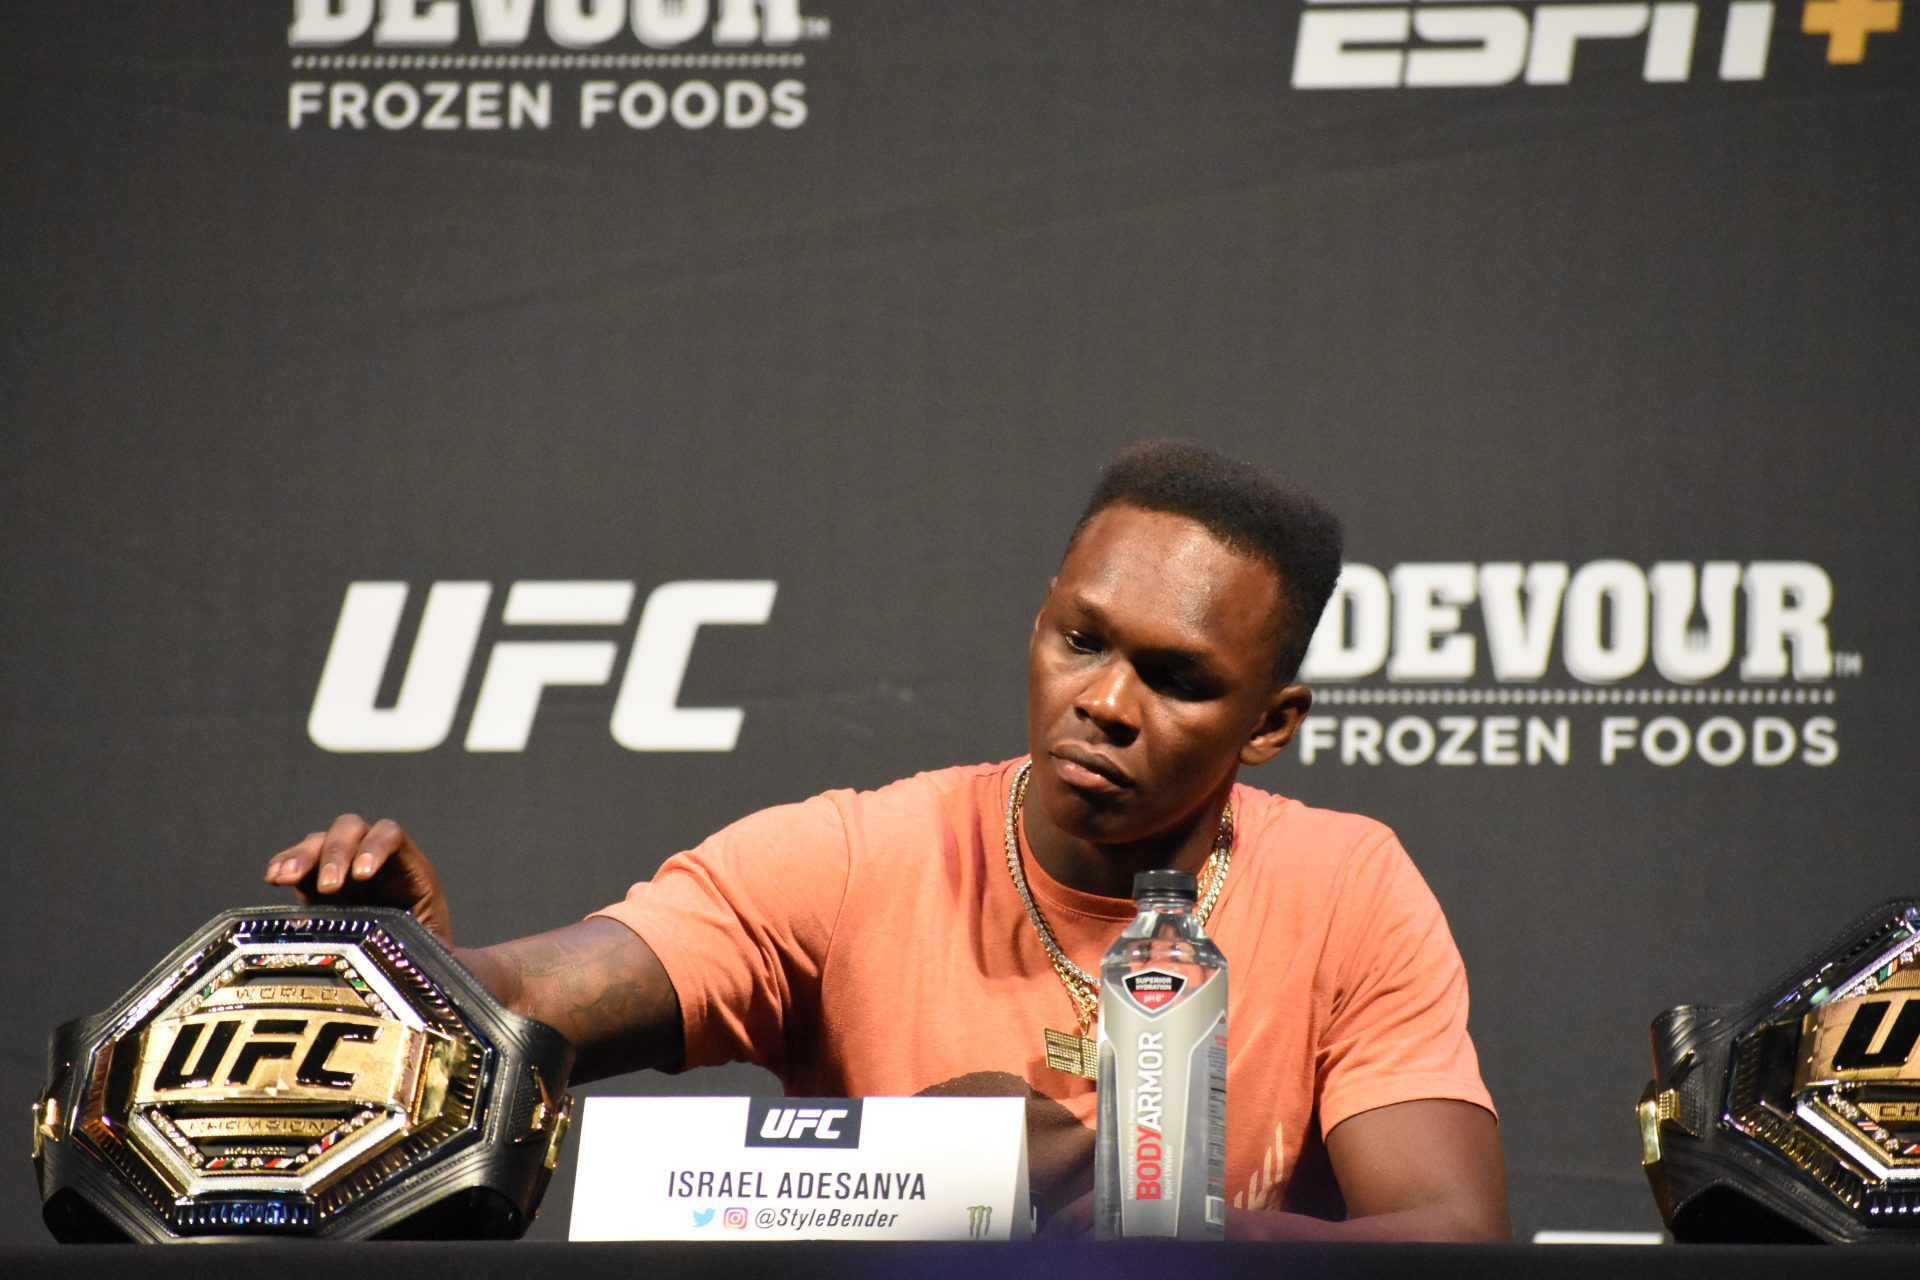 Israel Adesanya vs Robert Whittaker middleweight title fight confirmed for UFC 243